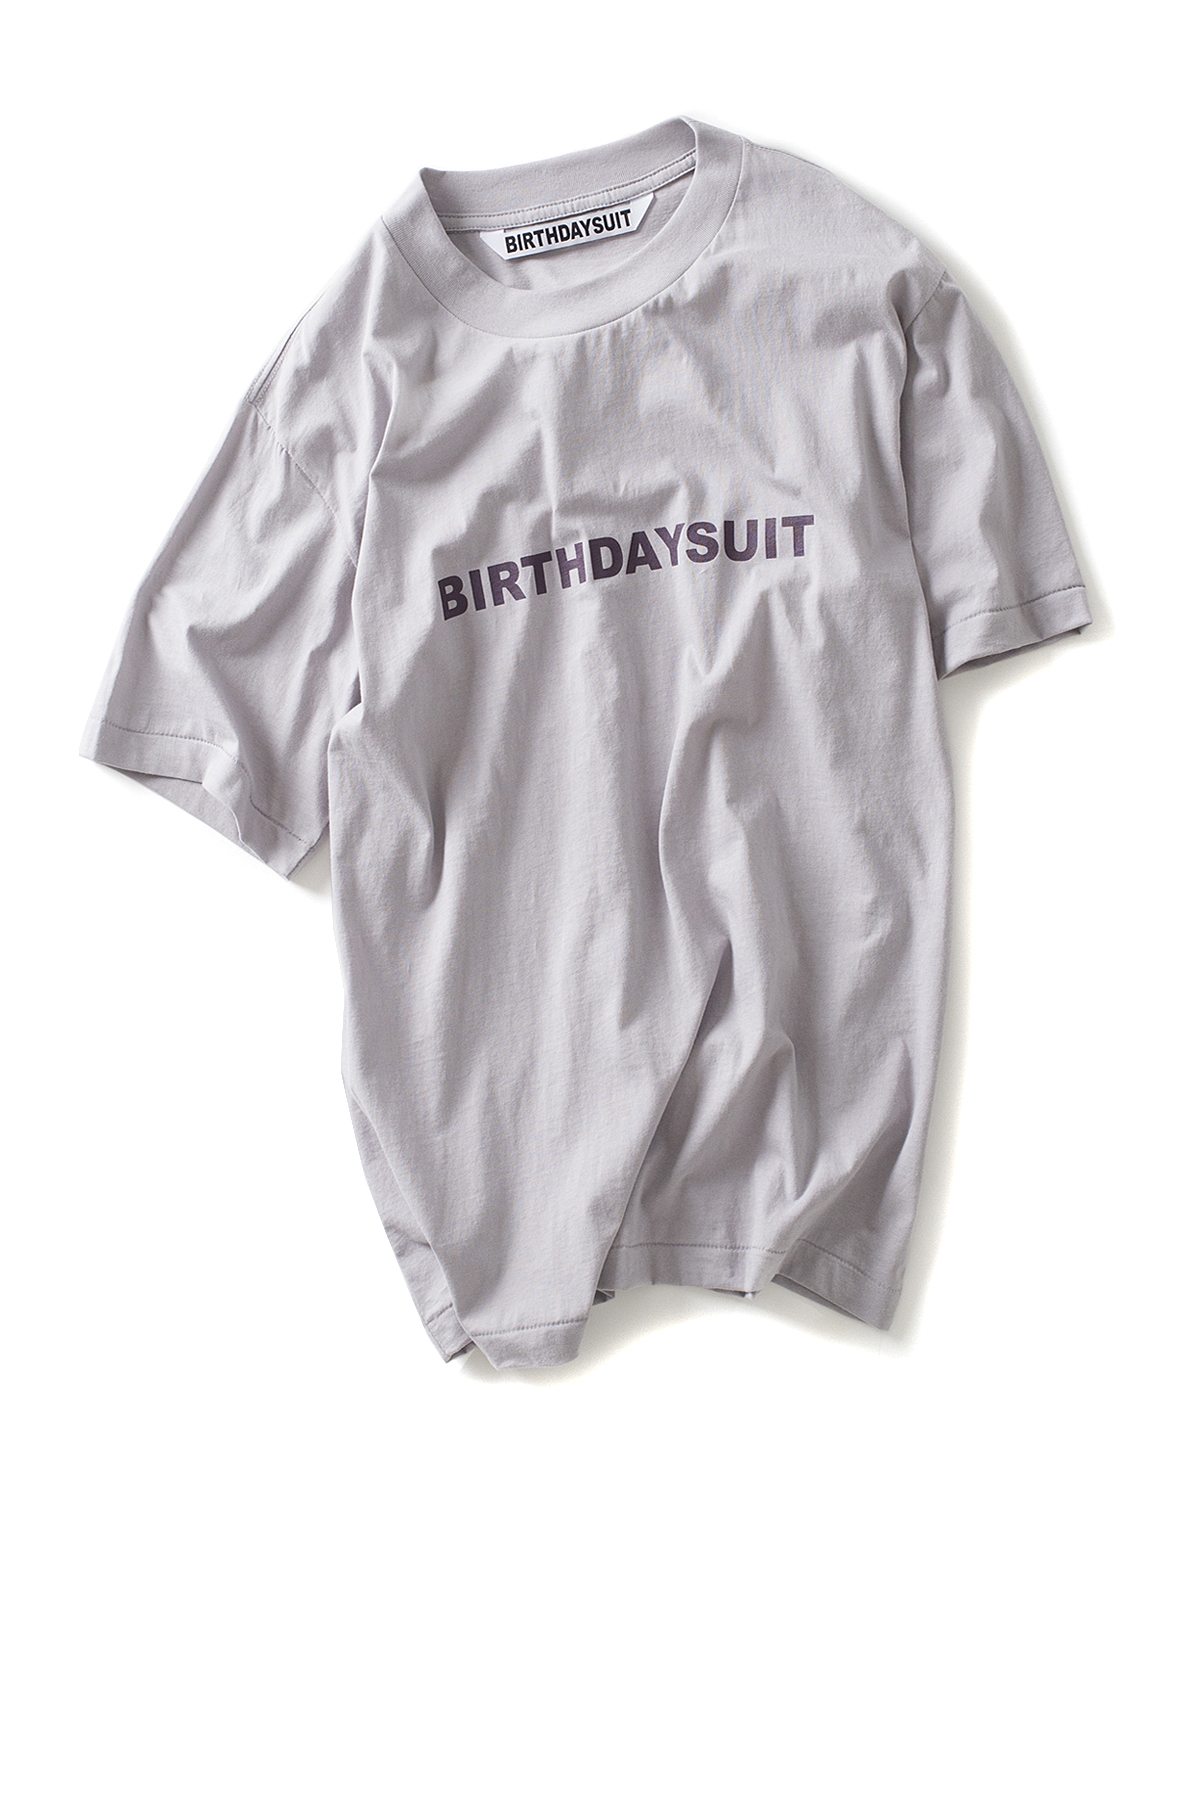 BIRTHDAYSUIT : Vacation T-Shirt (rhino)